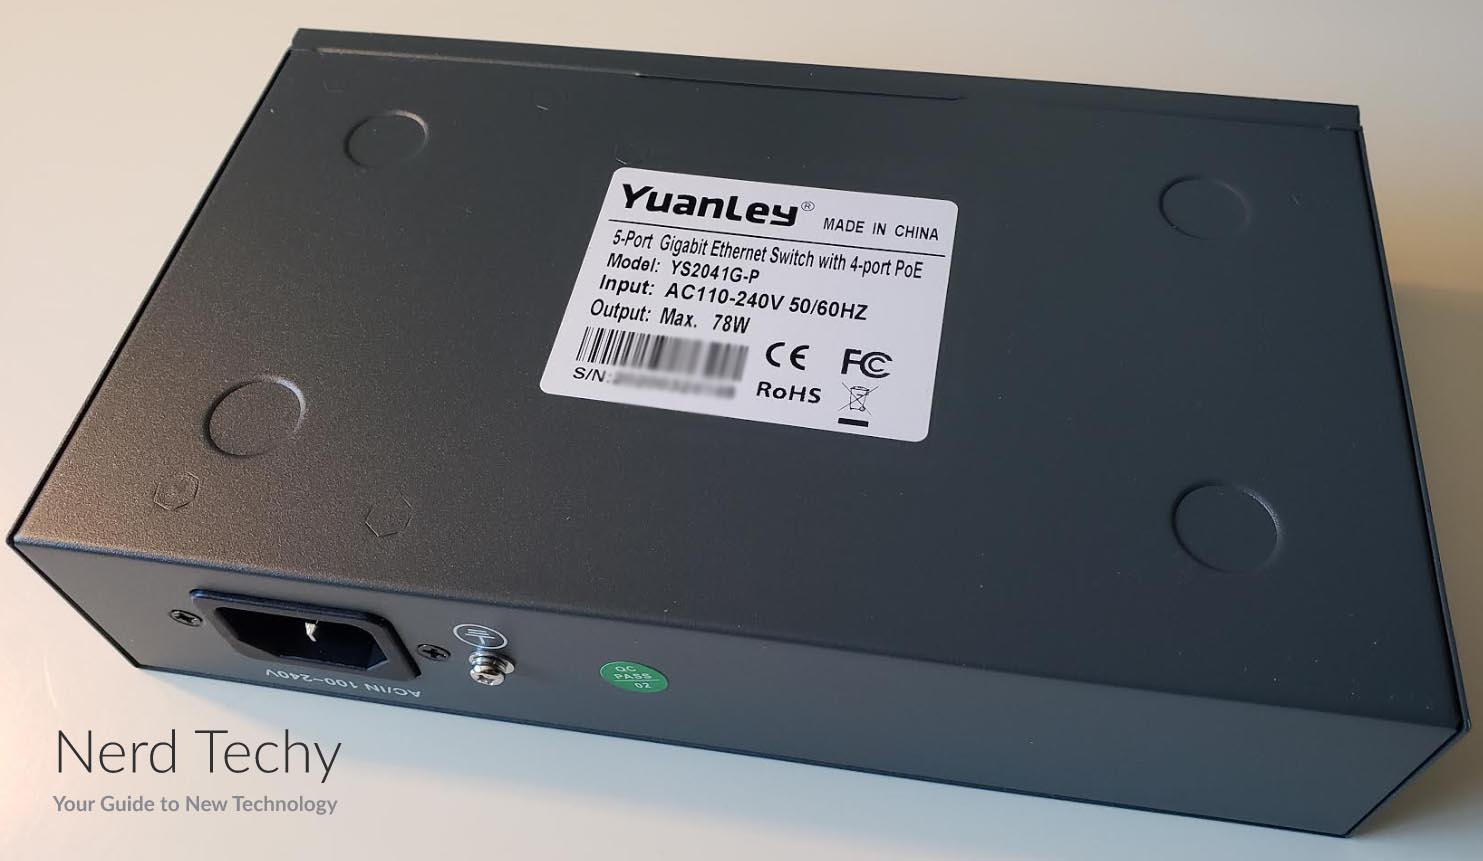 YuanLey Gigabit PoE Switch